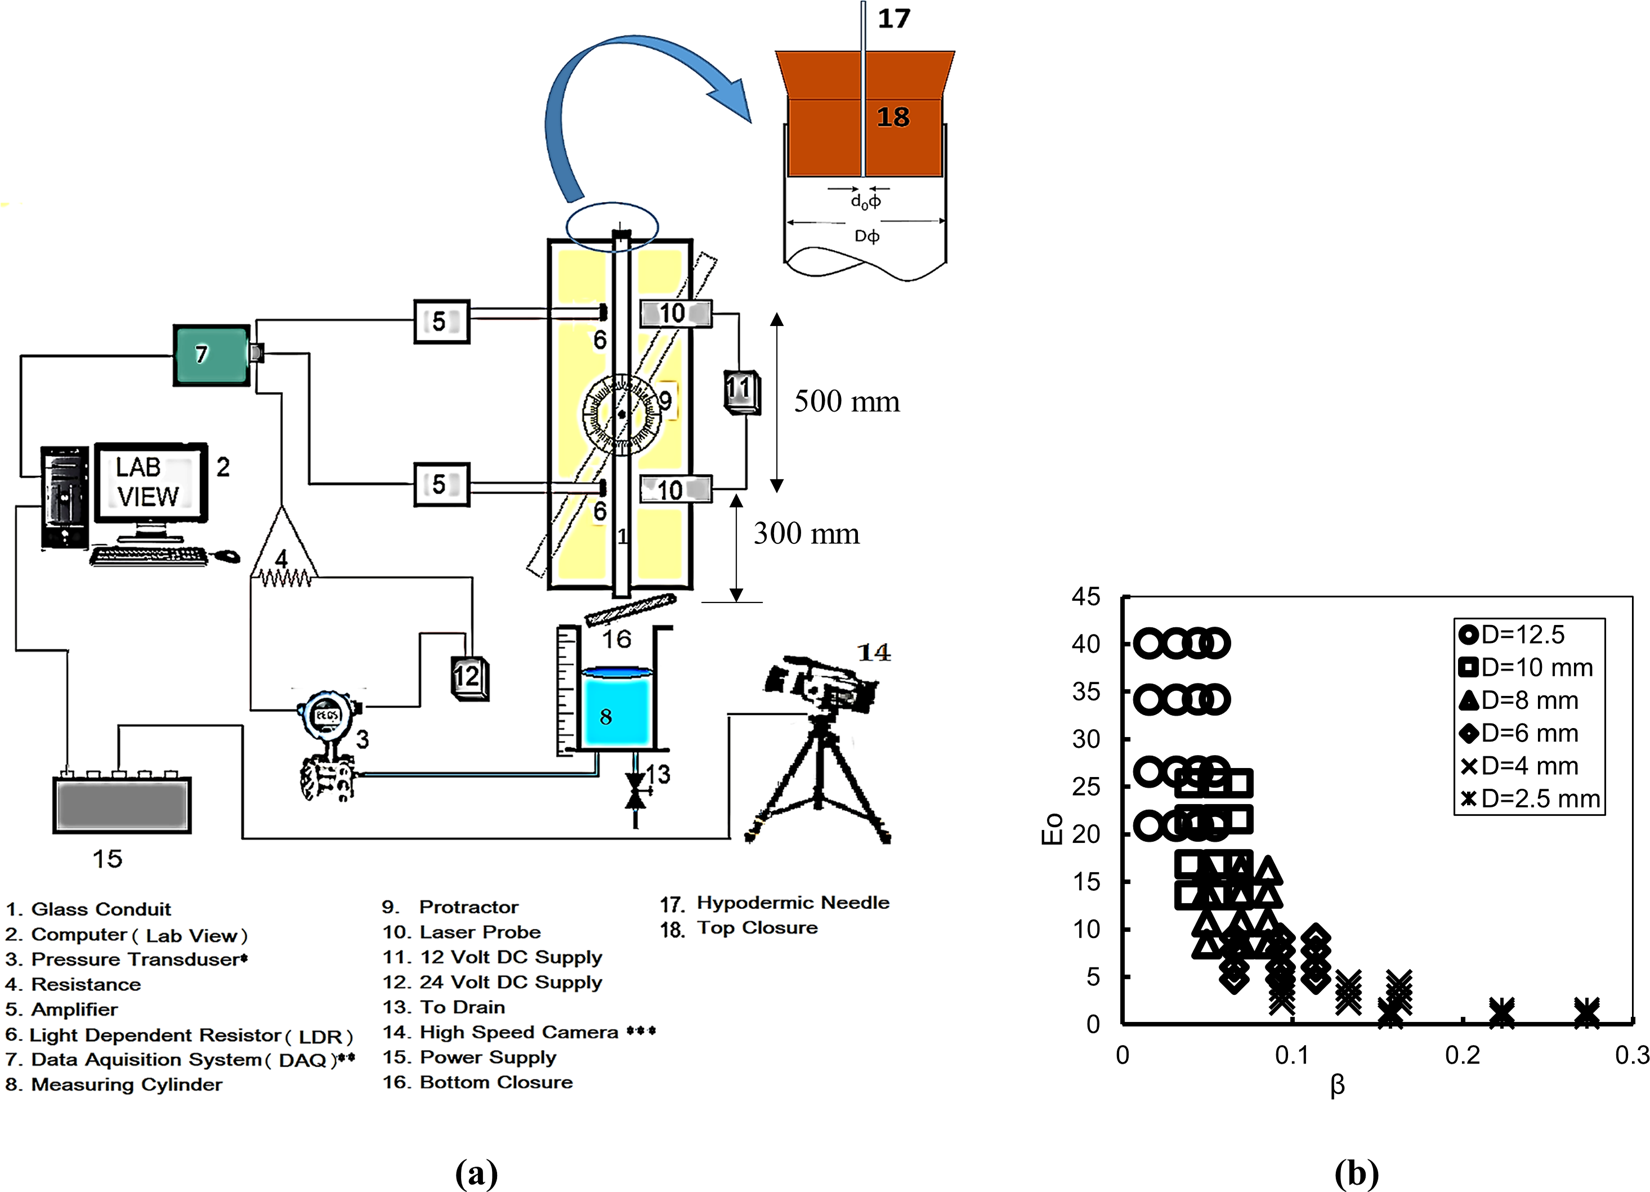 Draining Phenomenon In Closed Narrow Tubes Pierced At The Top An Resistor Circuit Diagram Light Dependent Experimental And Theoretical Analysis Scientific Reports